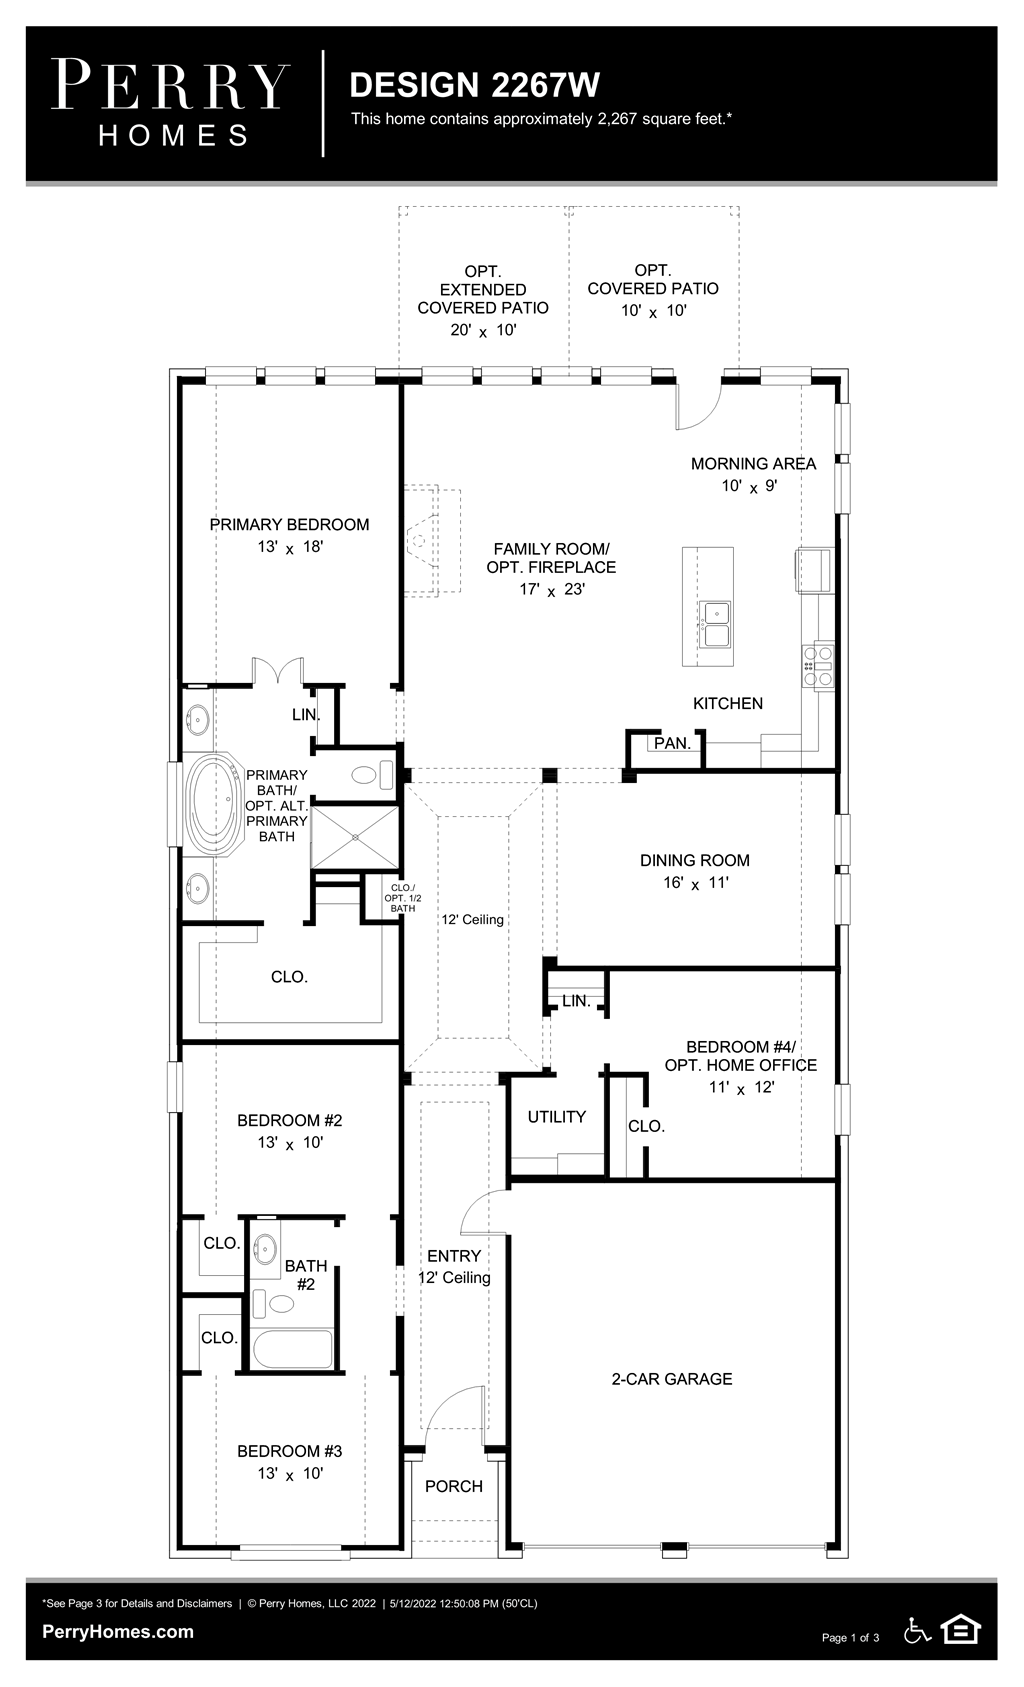 Floor Plan for 2267W